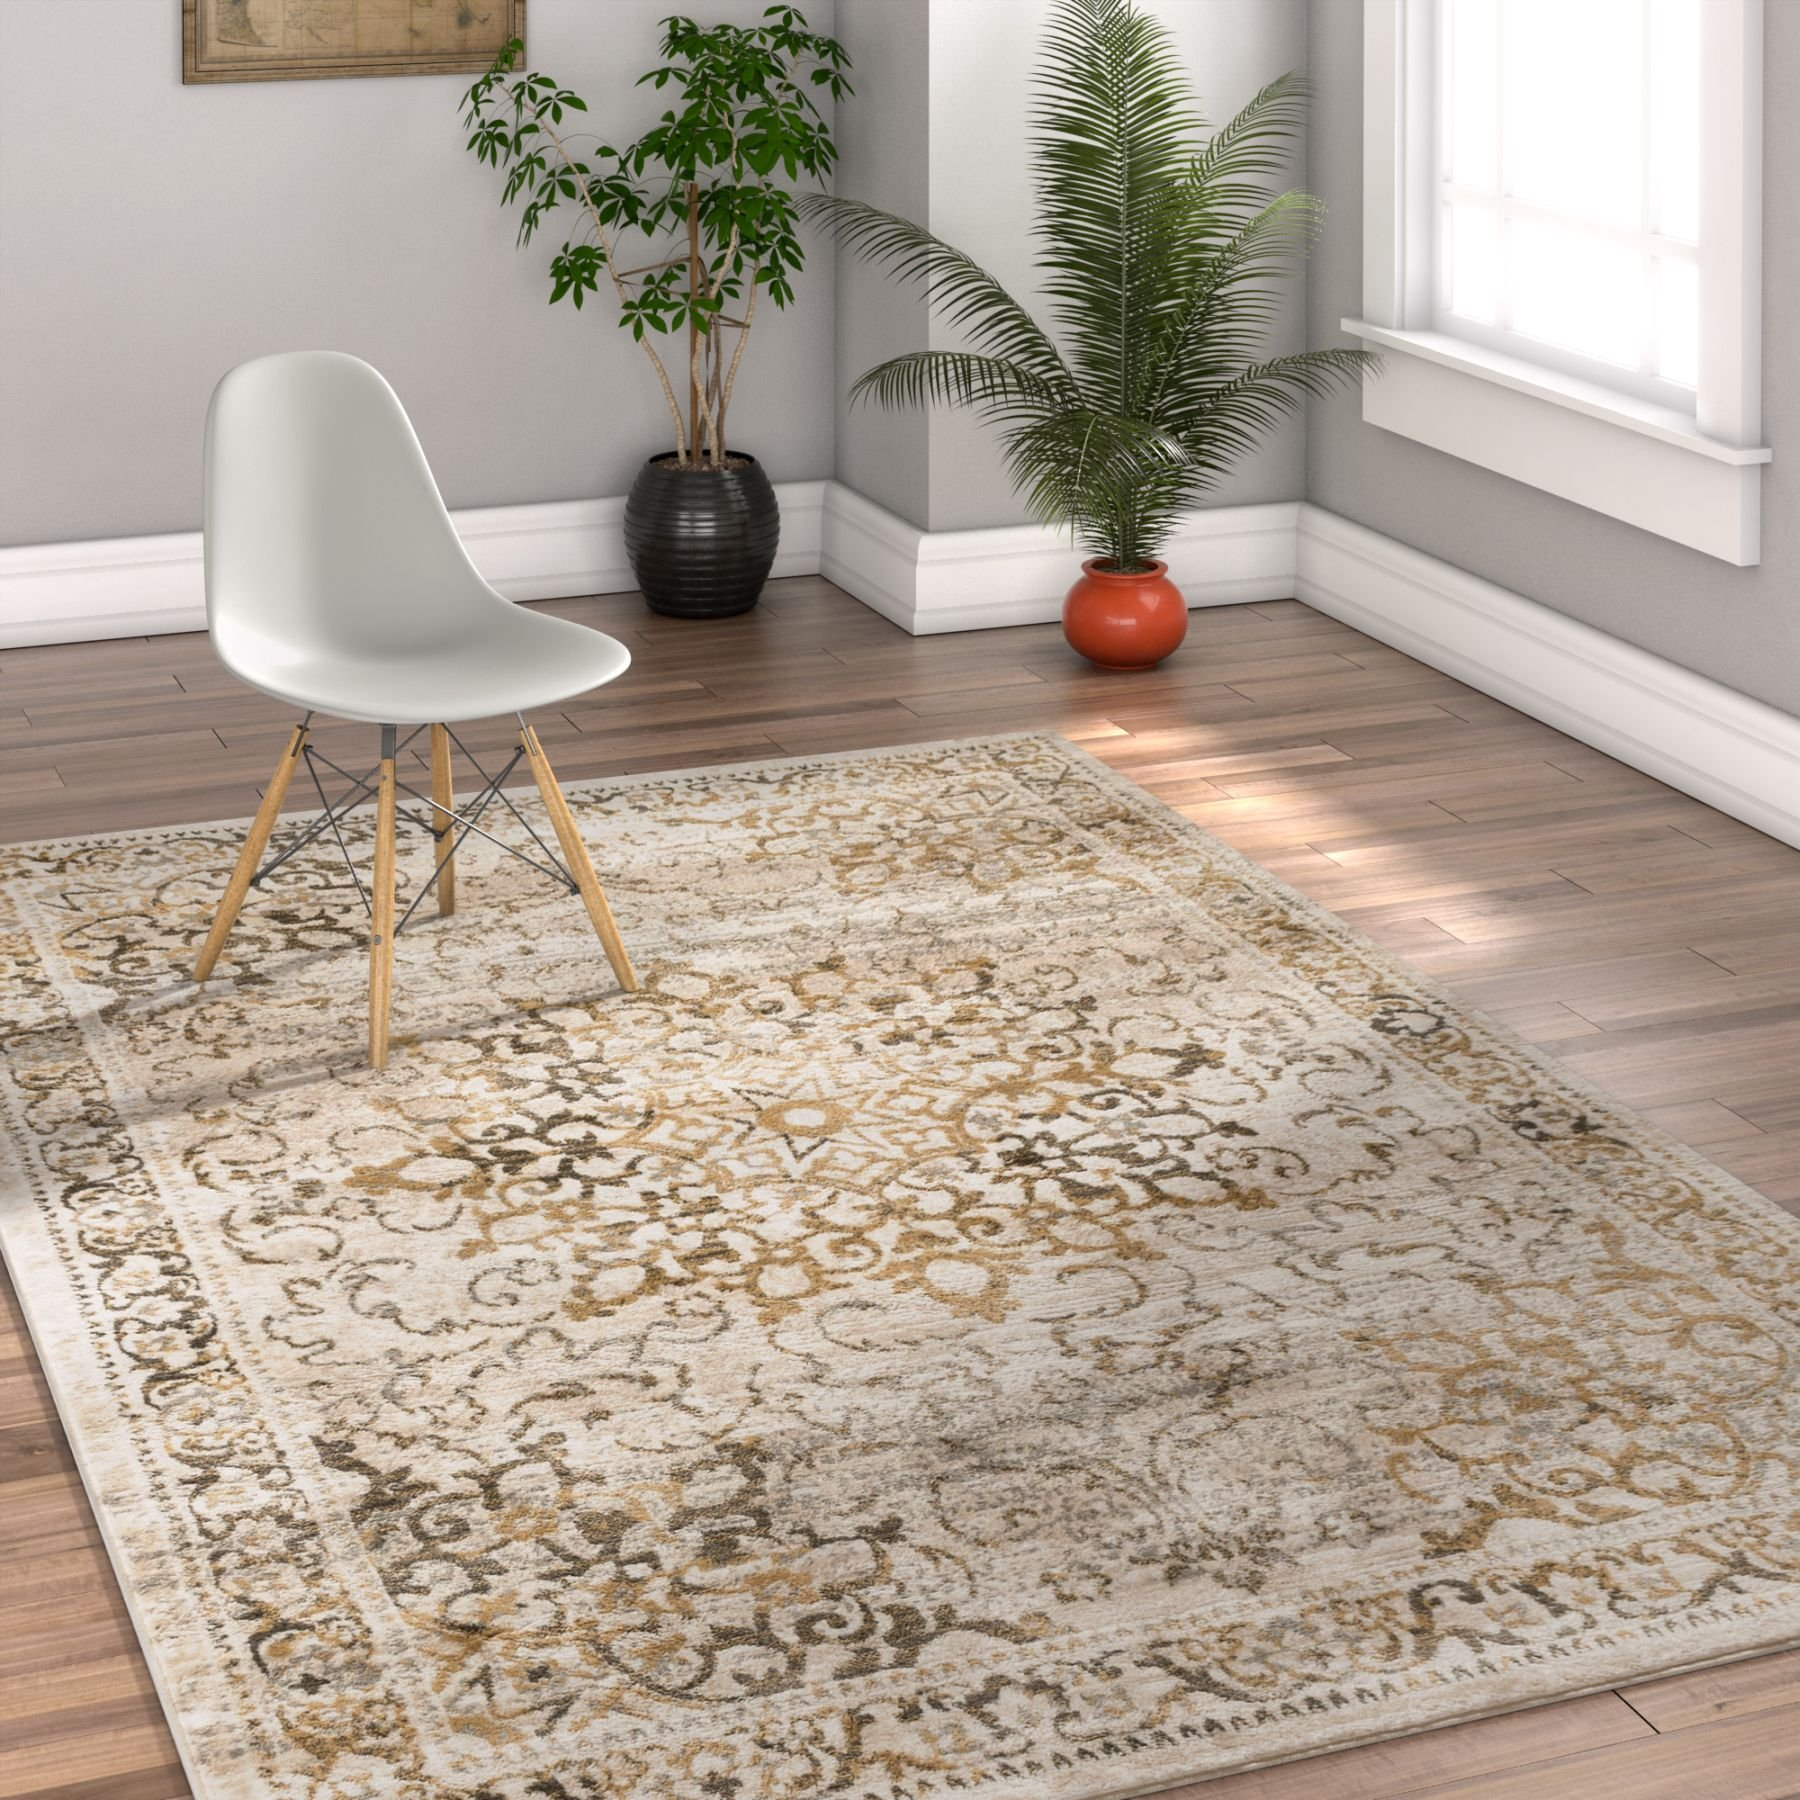 Coverly Gold & Beige Vintage Medallion Traditional Persian Oriental 8x10 ( 7'10'' x 9'10'' ) Area Rug Neutral Modern Shabby Chic Thick Soft Plush Shed Free